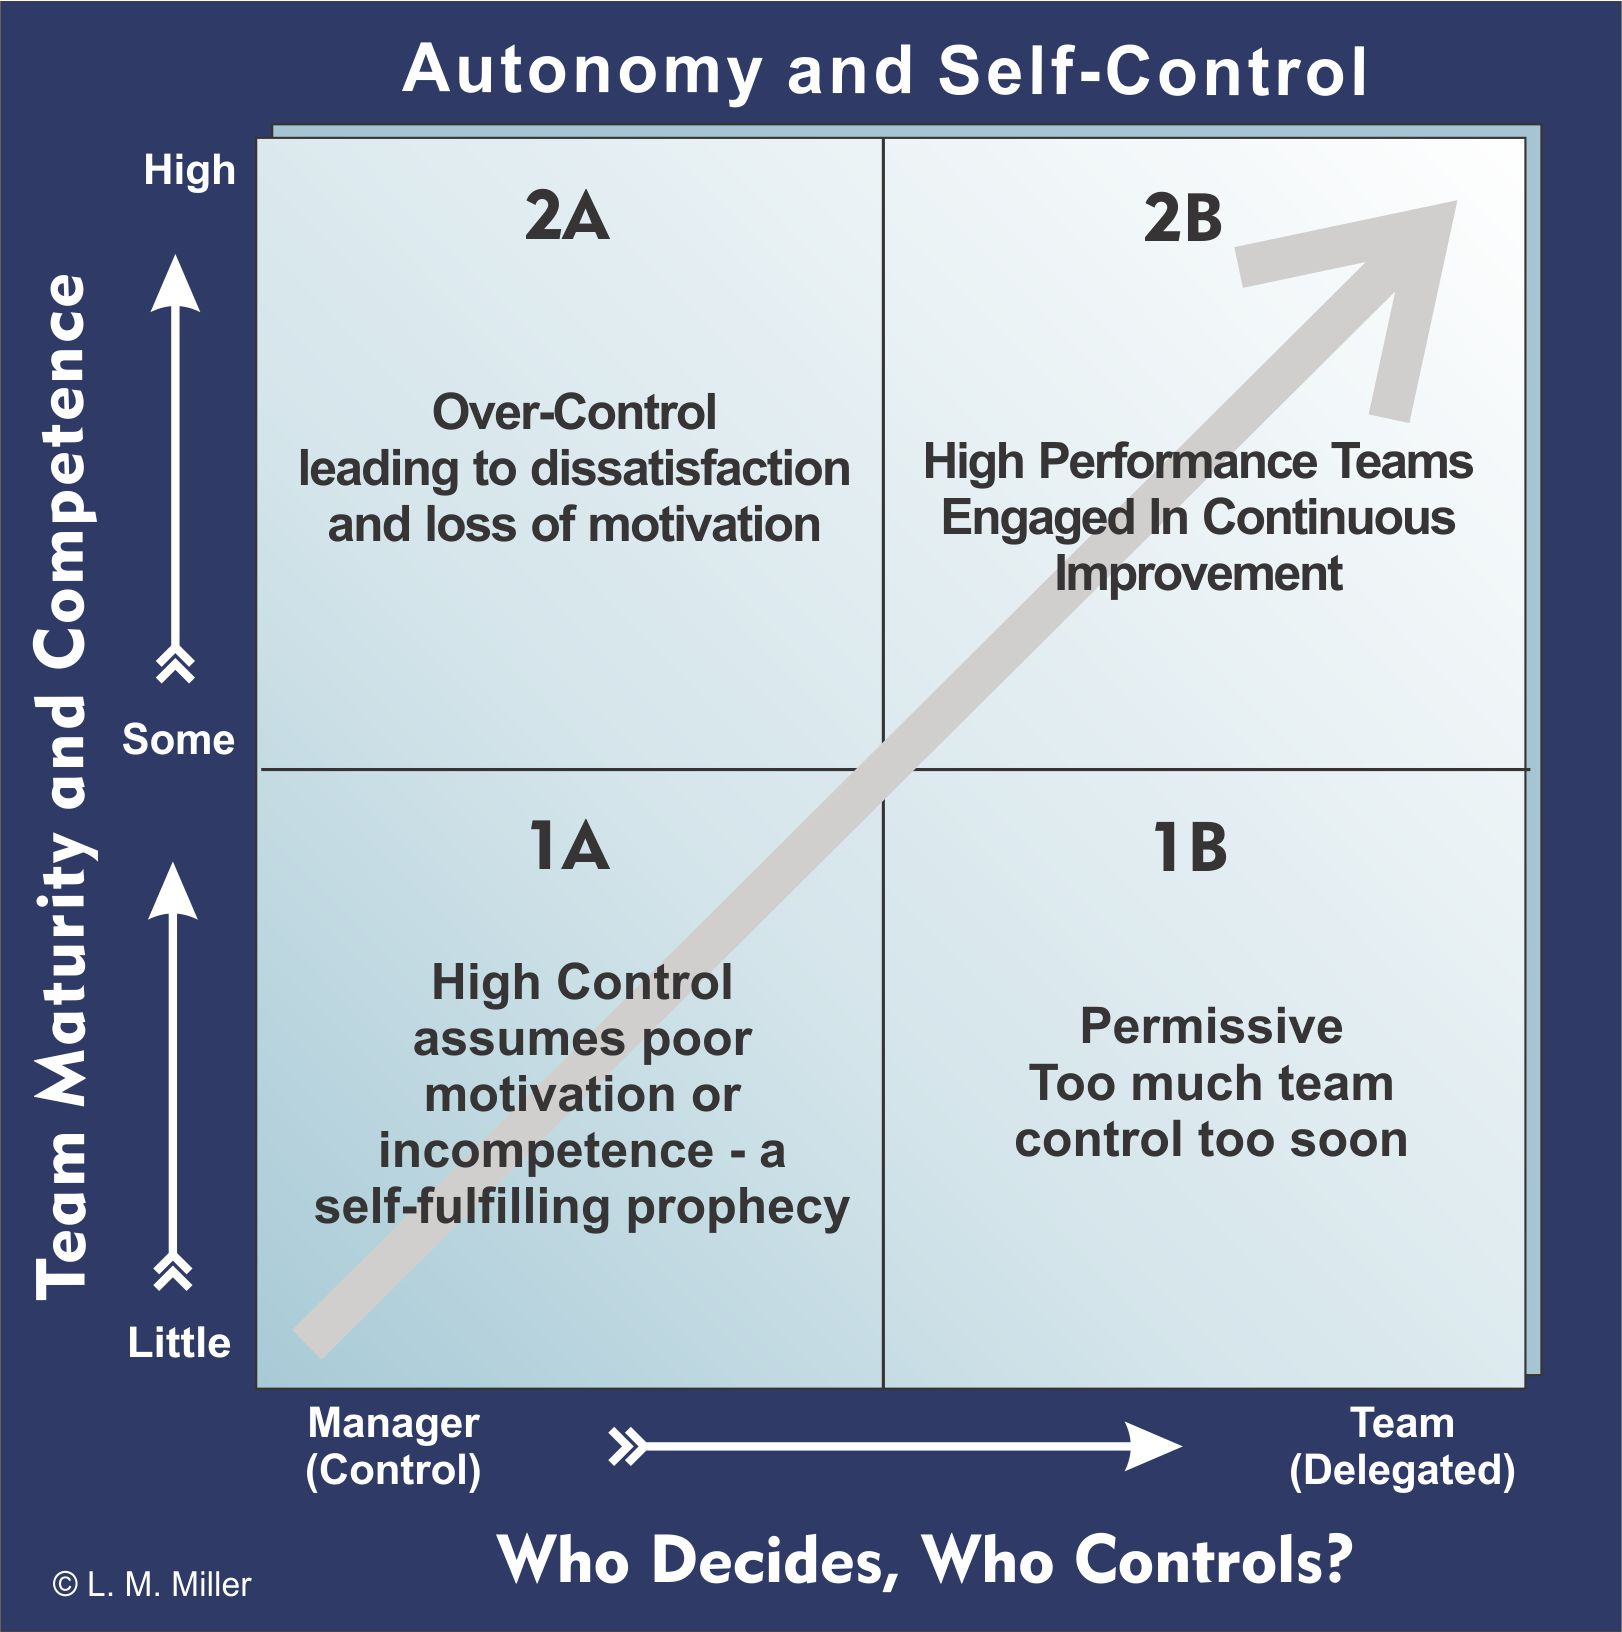 Get the Most from Your Teams: Optimize Autonomy and Self-Control